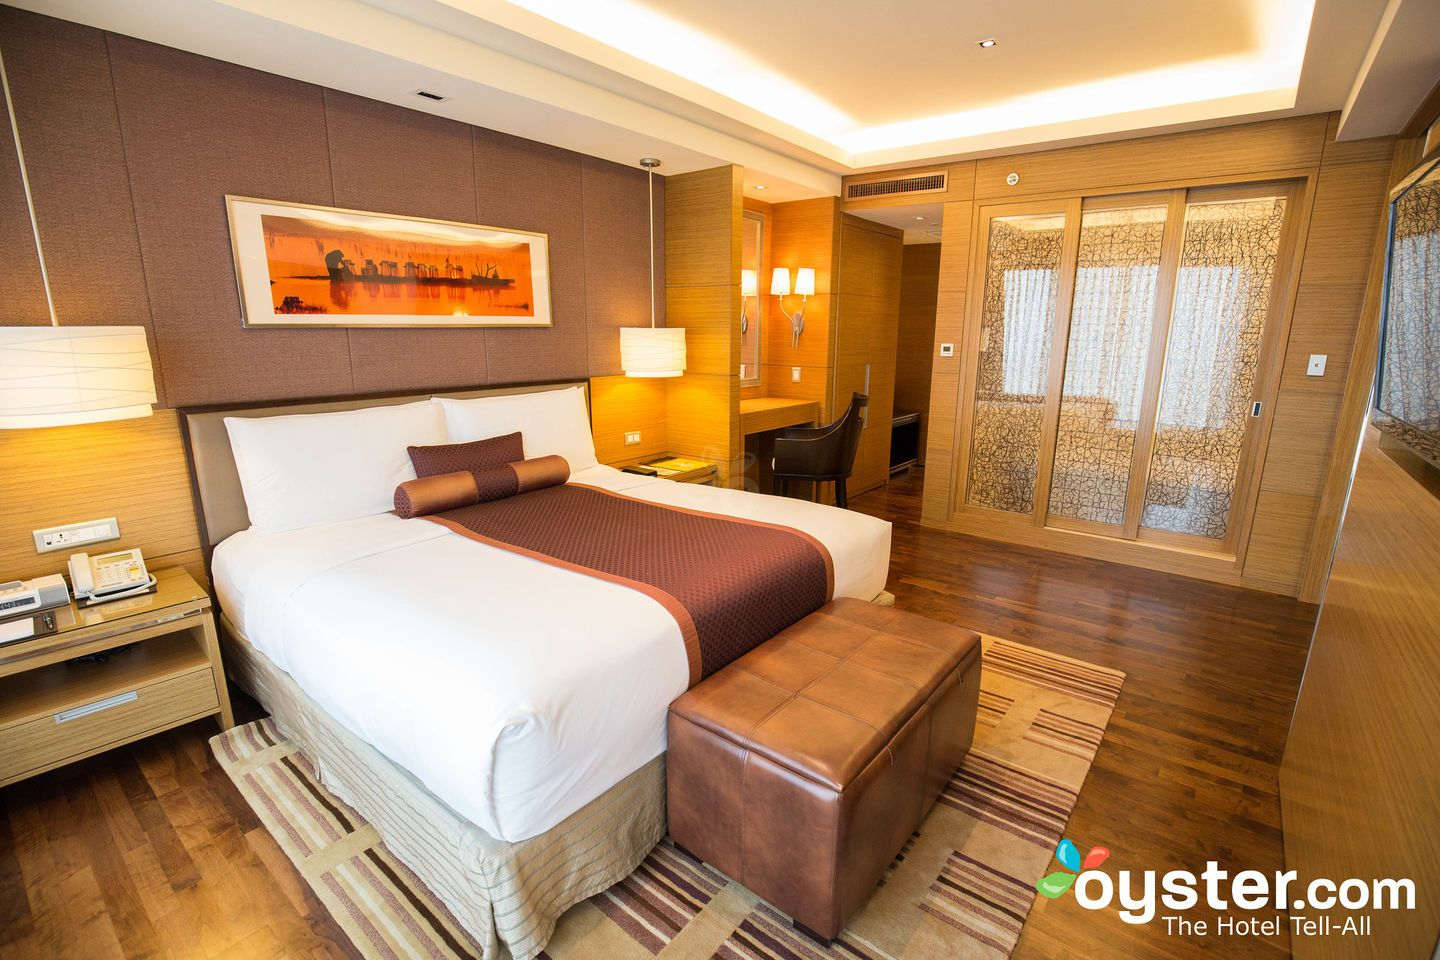 The Executive Suite at the InterContinental Asiana Saigon